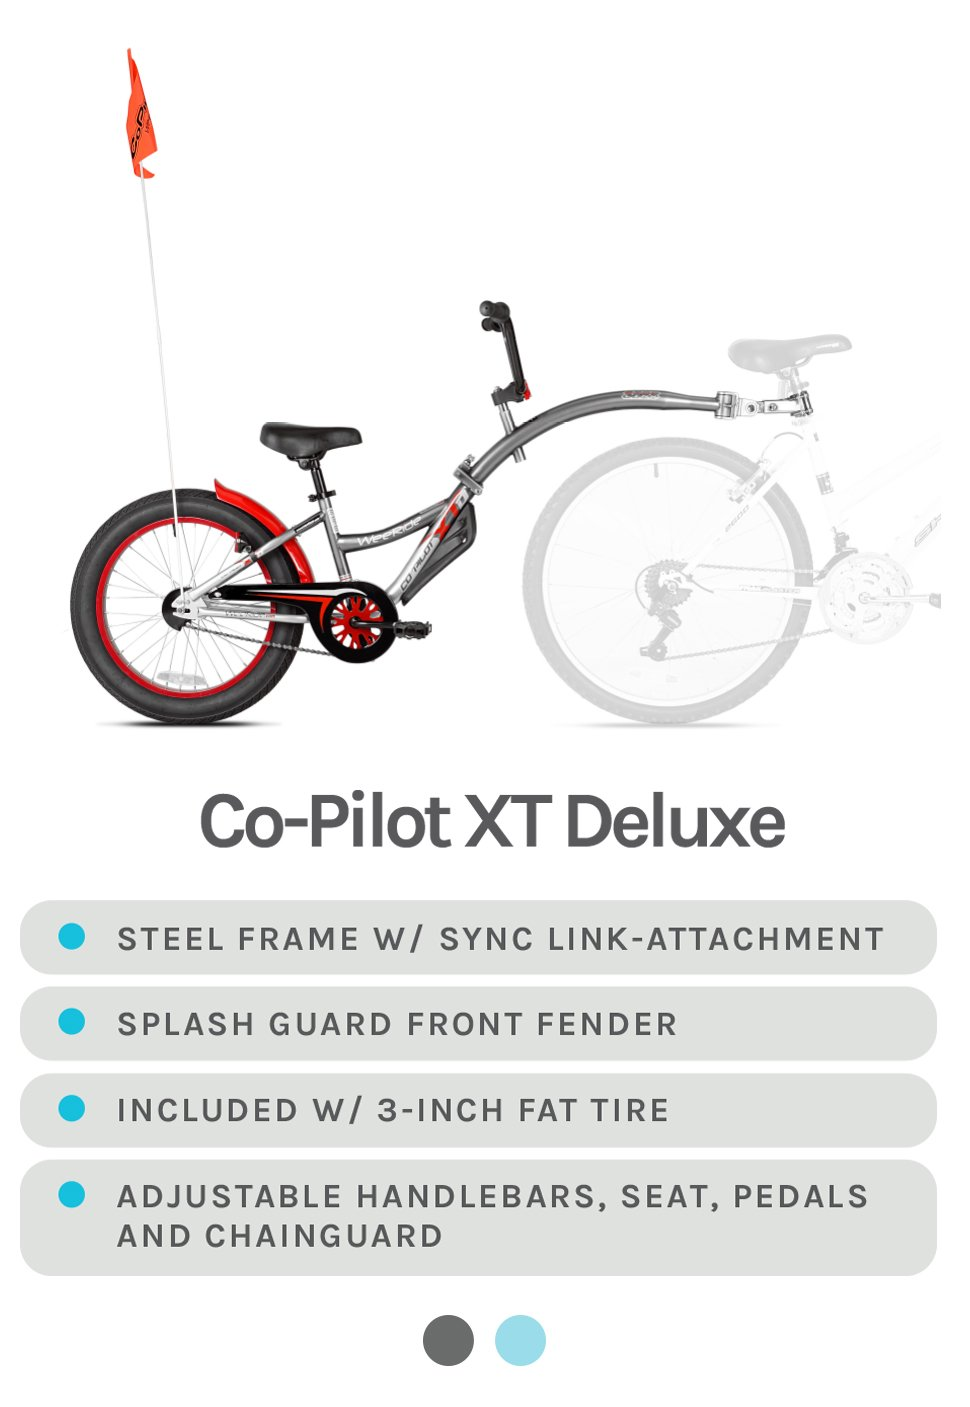 Co-Pilot XT Deluxe (w/ orange safety flag) - Grey with Red Accents - Steel Frame w/ Sync Link-Attachment, Splash Guard Front Fender, Included w/ 3-inch fat tire, and adjustable handlebars, seat, pedals, and chainguard - Available in Grey and Light Blue